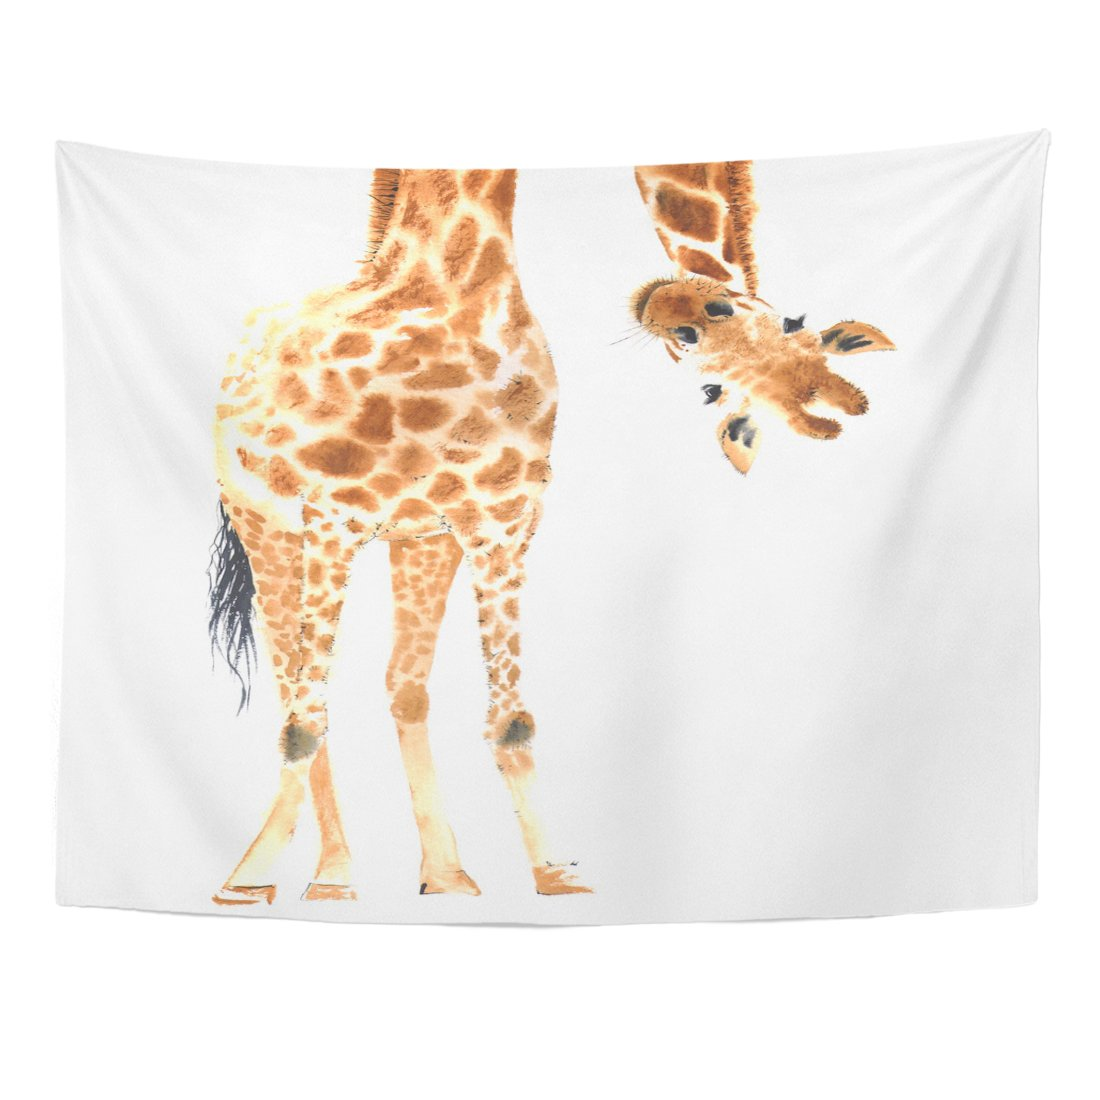 Emvency Tapestry Animal Realistic Giraffe Made in Watercolor Close up Zoo Safari Home Decor Wall Hanging for Living Room Bedroom Dorm 60x80 inches